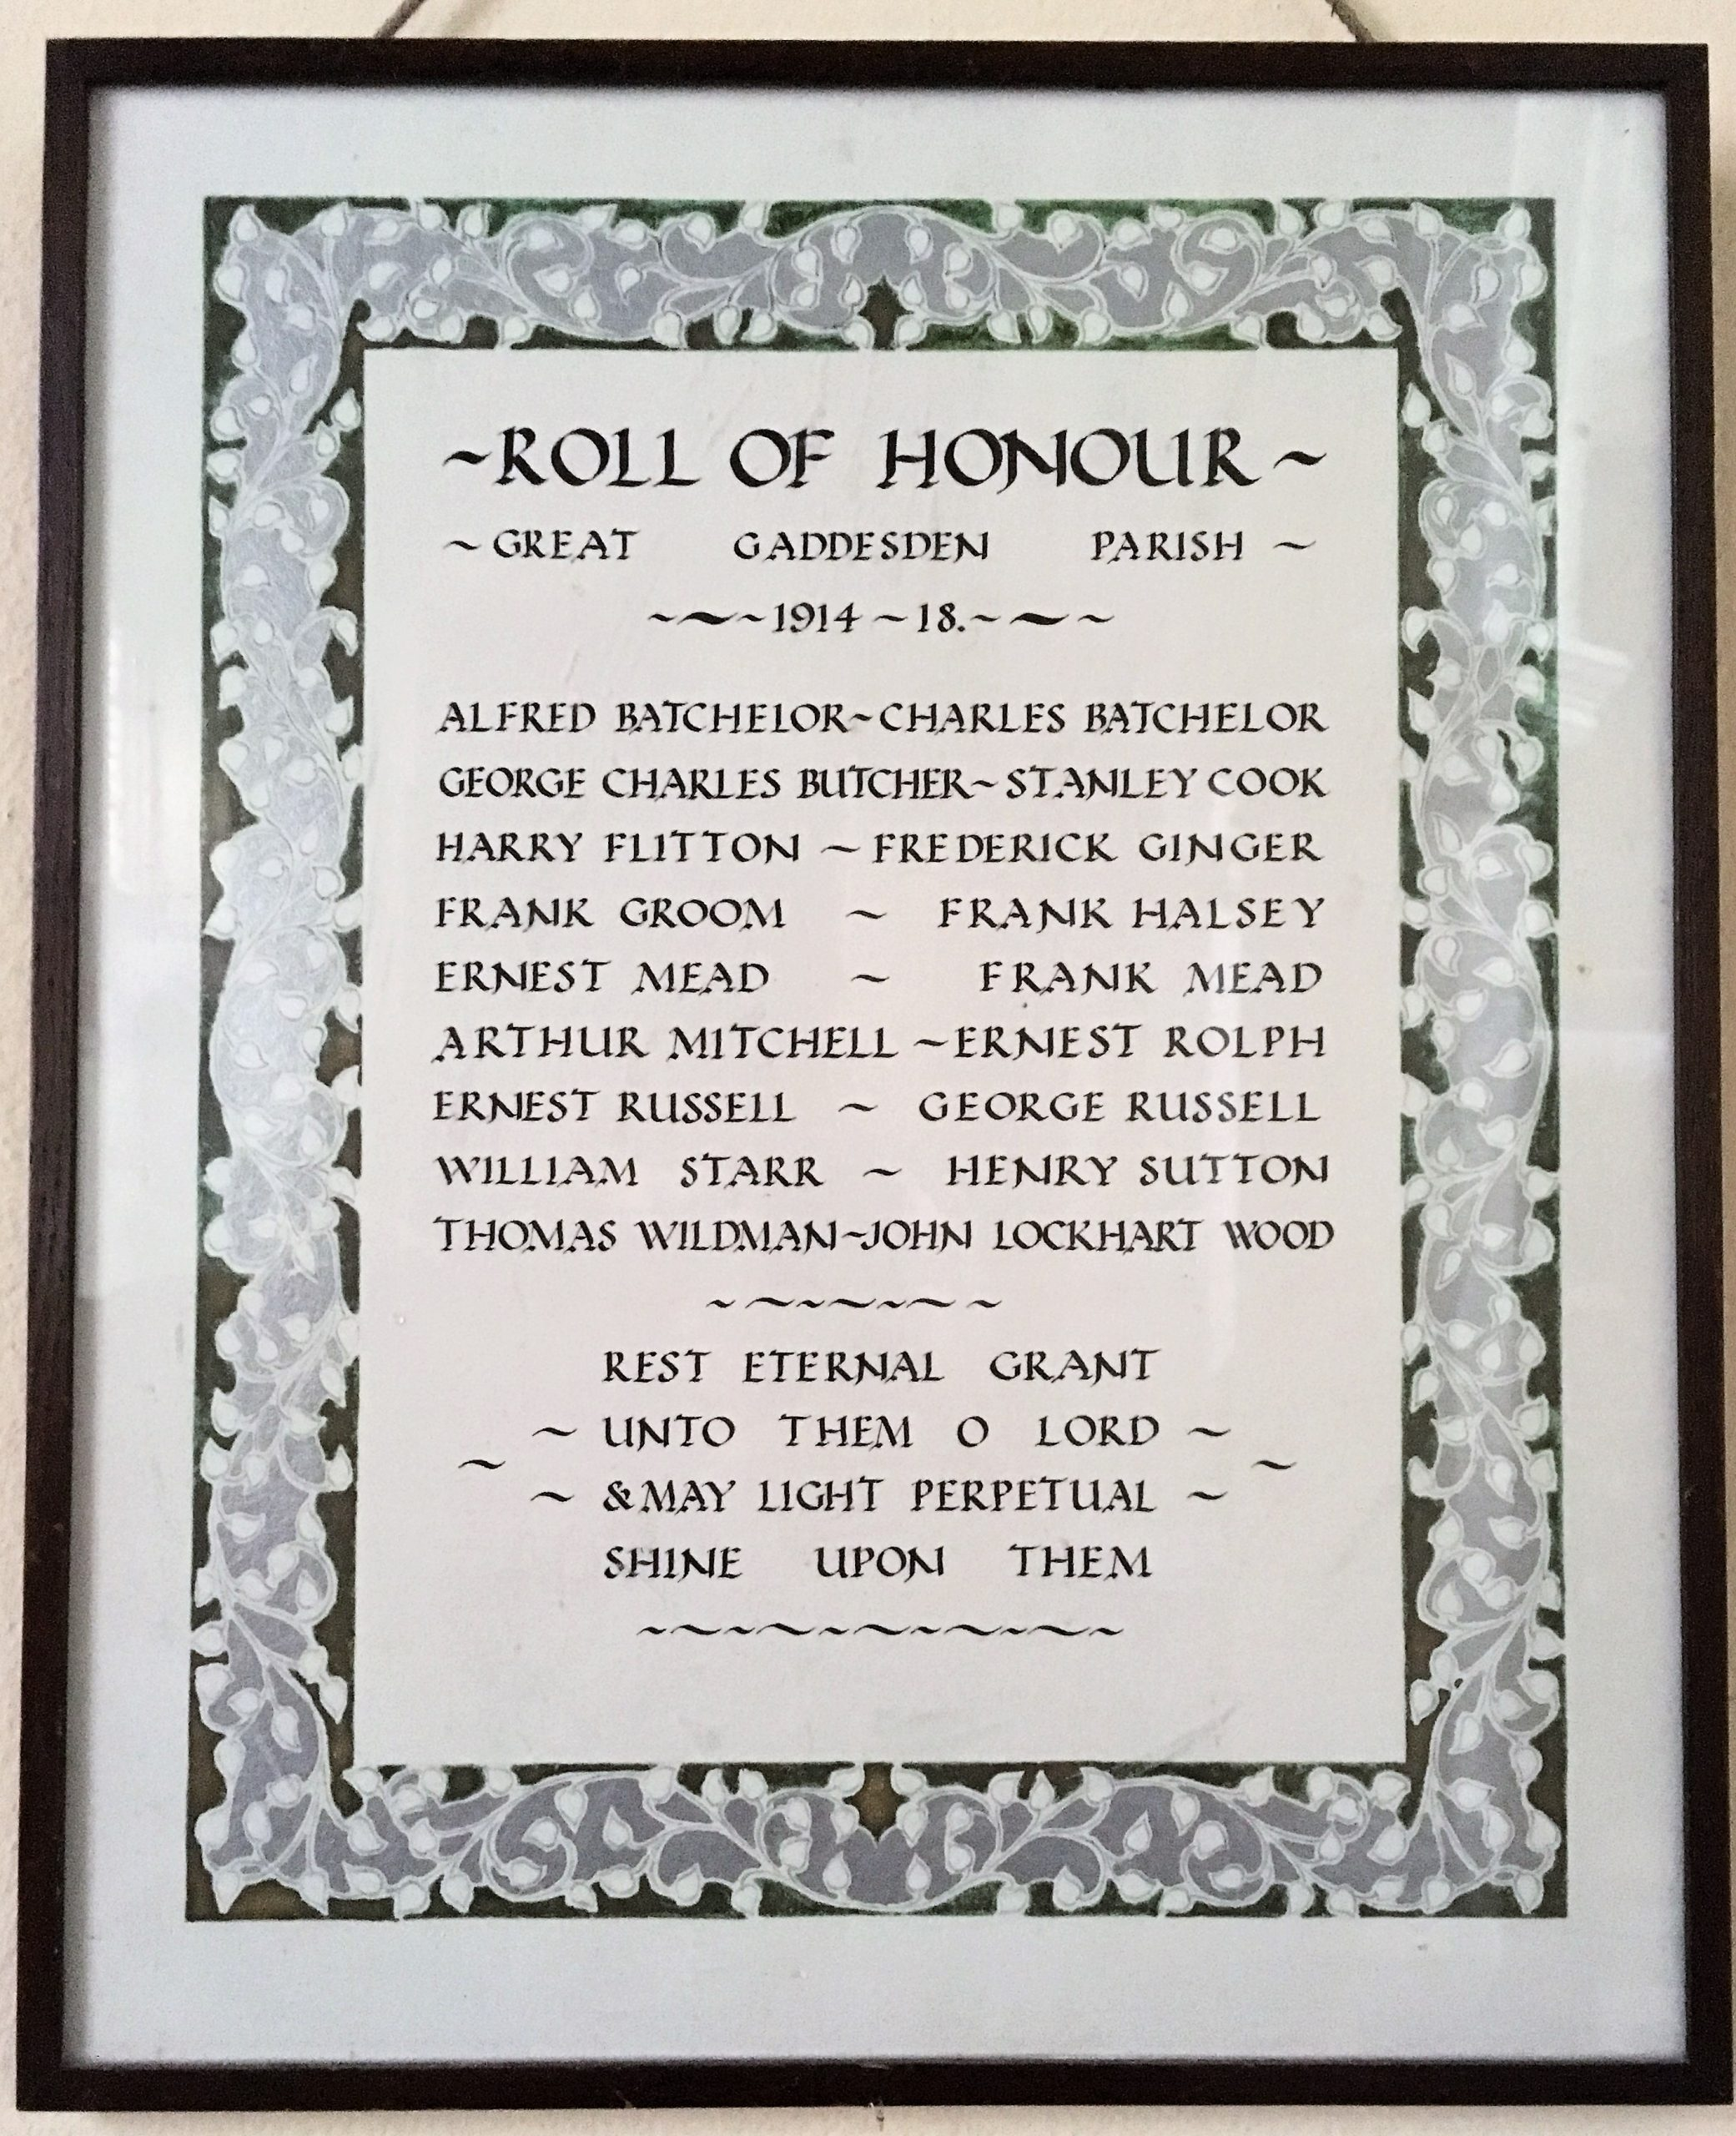 Photo of Great Gaddesden's Roll of Honour